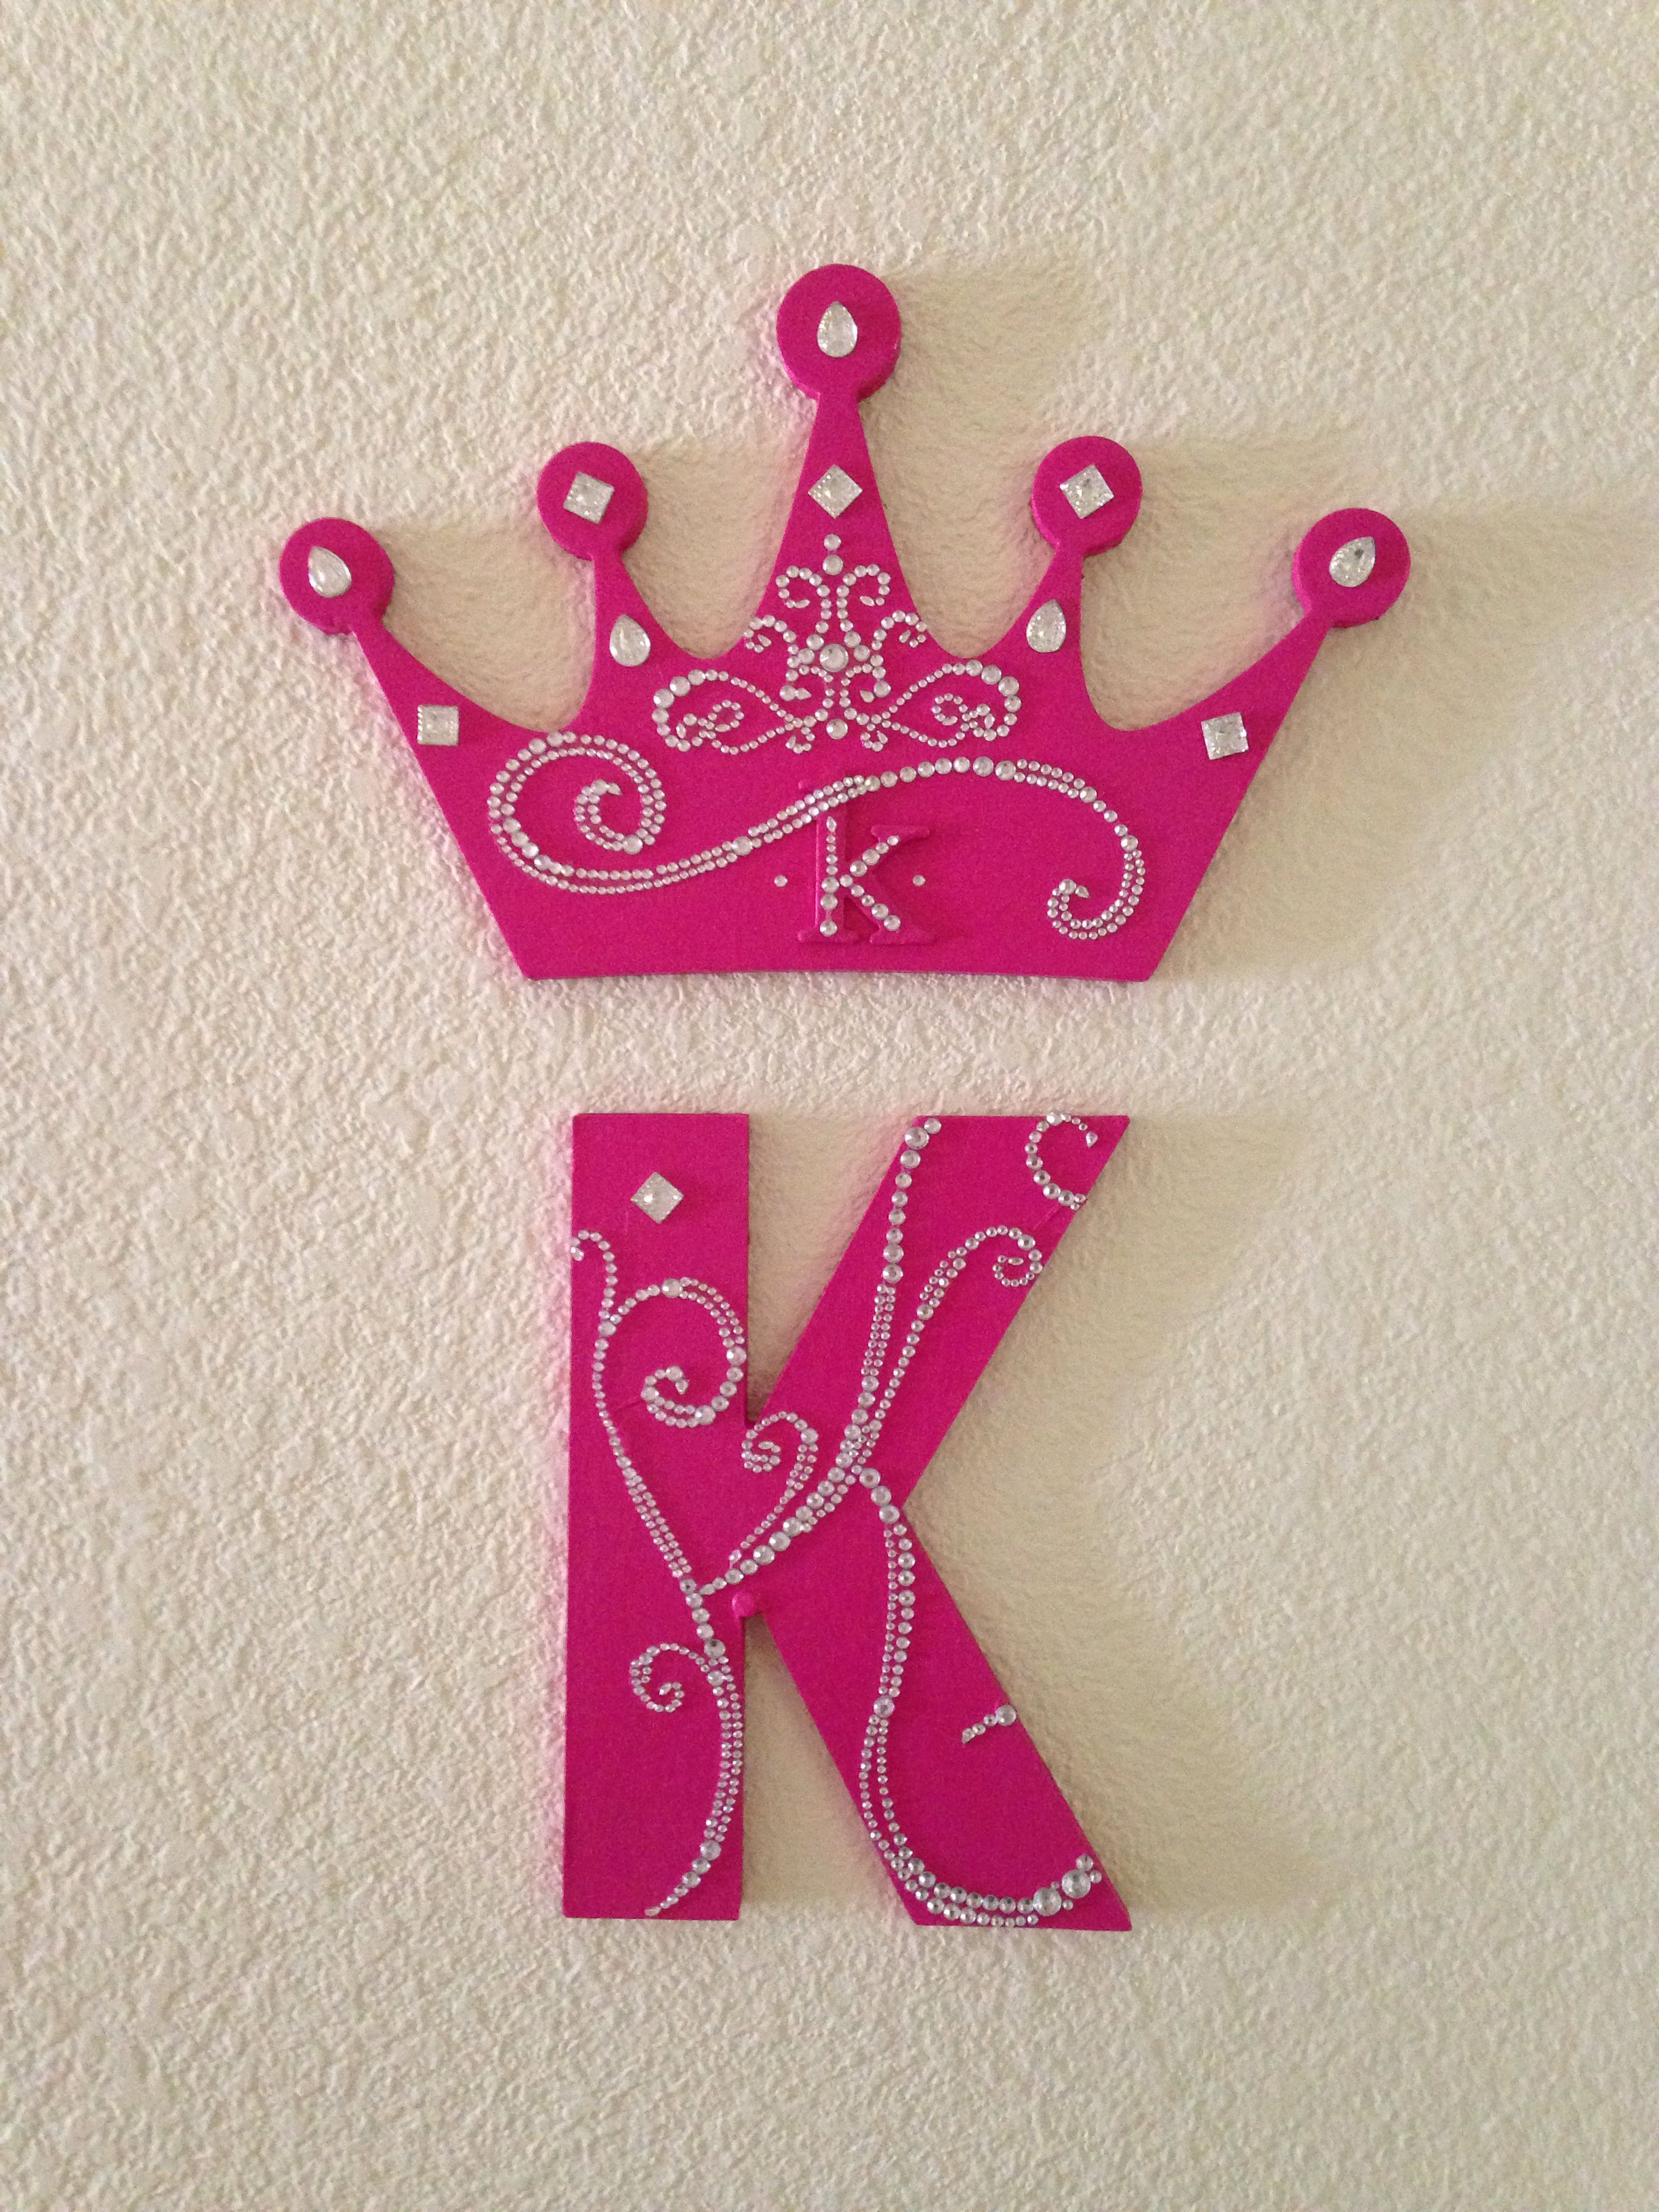 Blinged monogram letter \